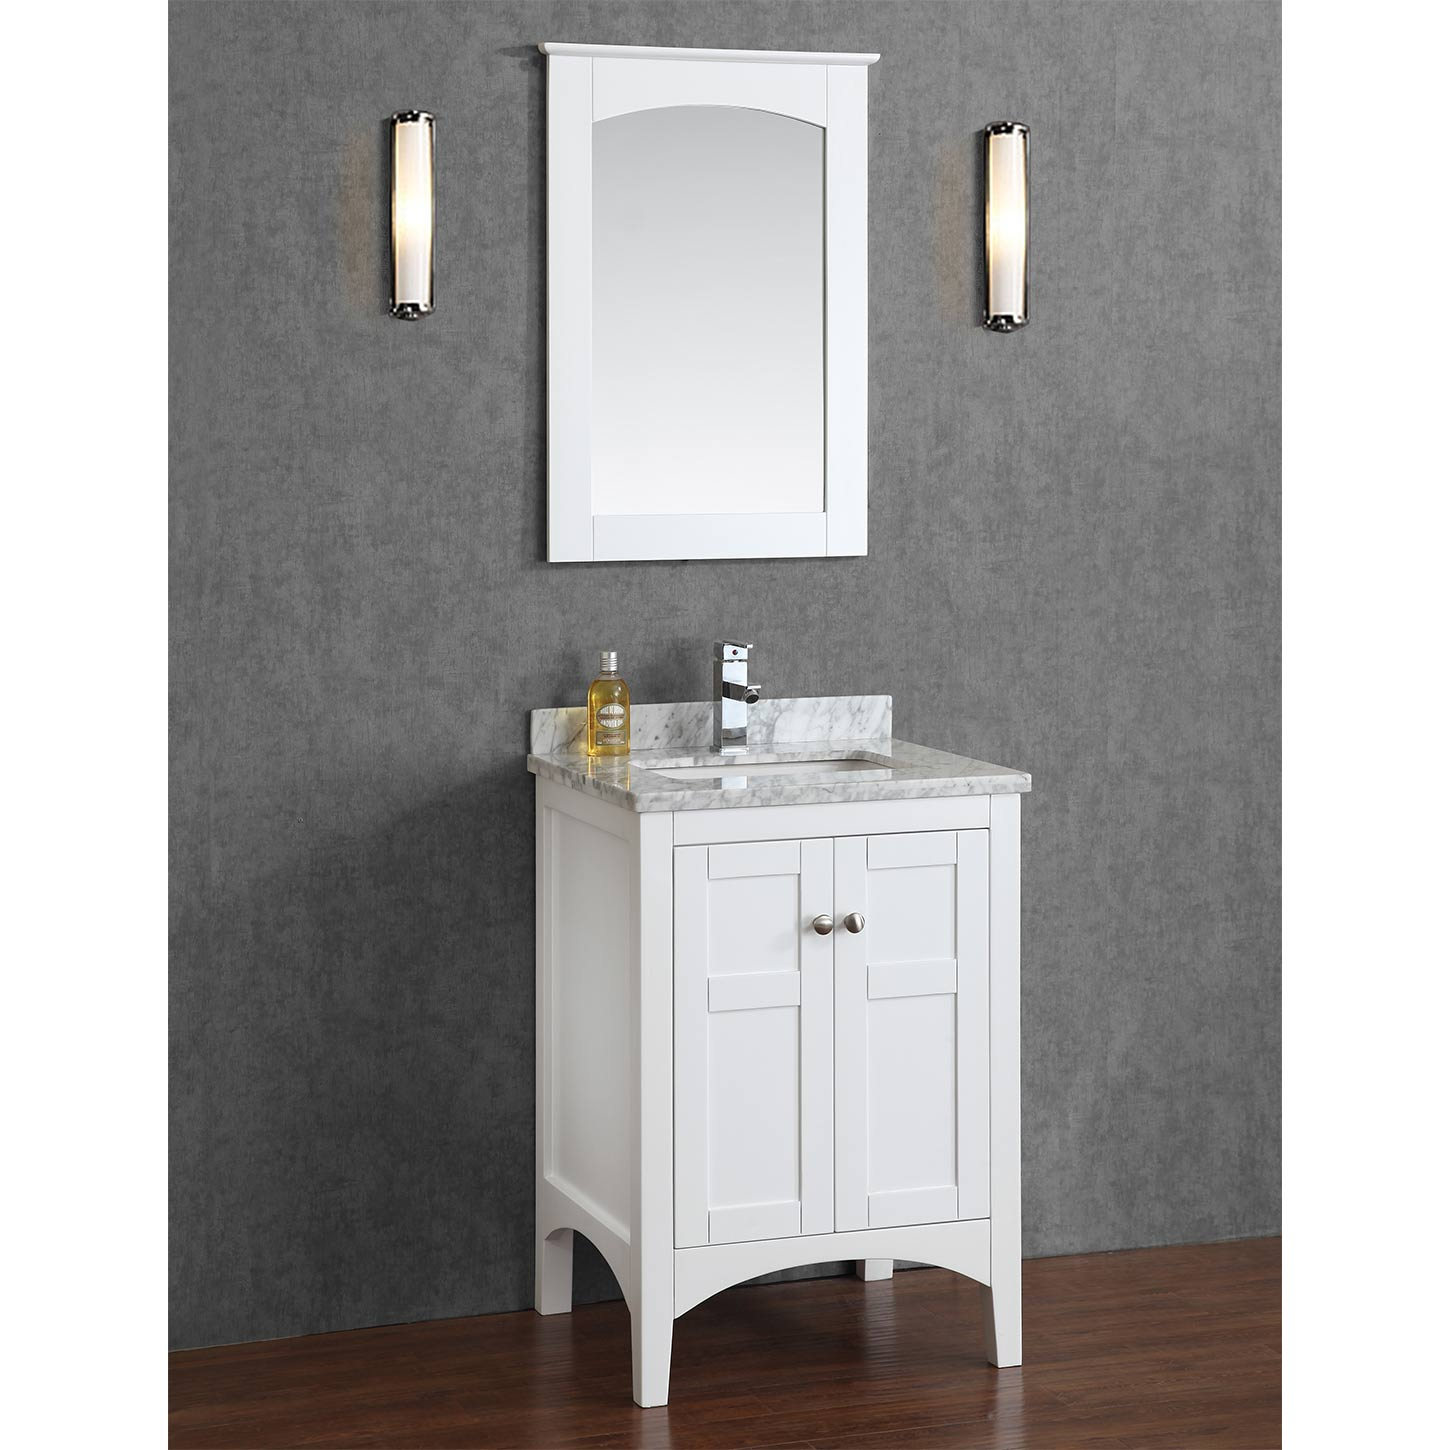 Buy Martin 24 Solid Wood Single Bathroom Vanity In White Hm 001 24 Wmsq Wt: solid wood bathroom vanities cabinets